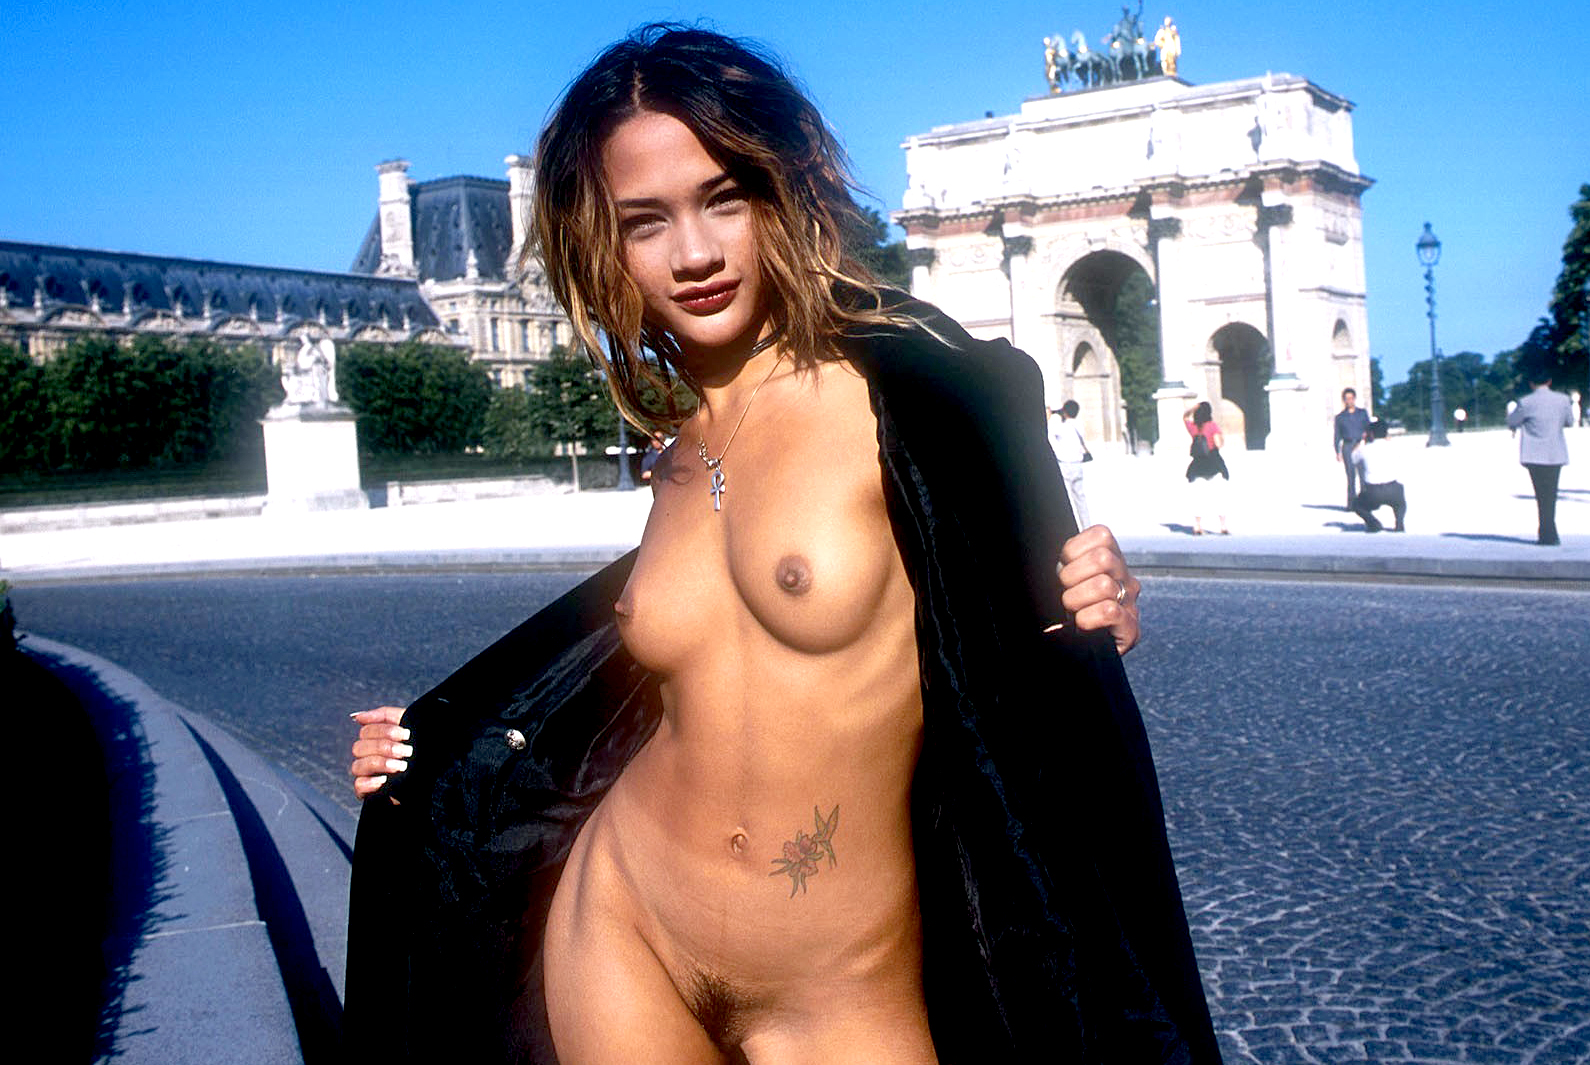 Actress nude french